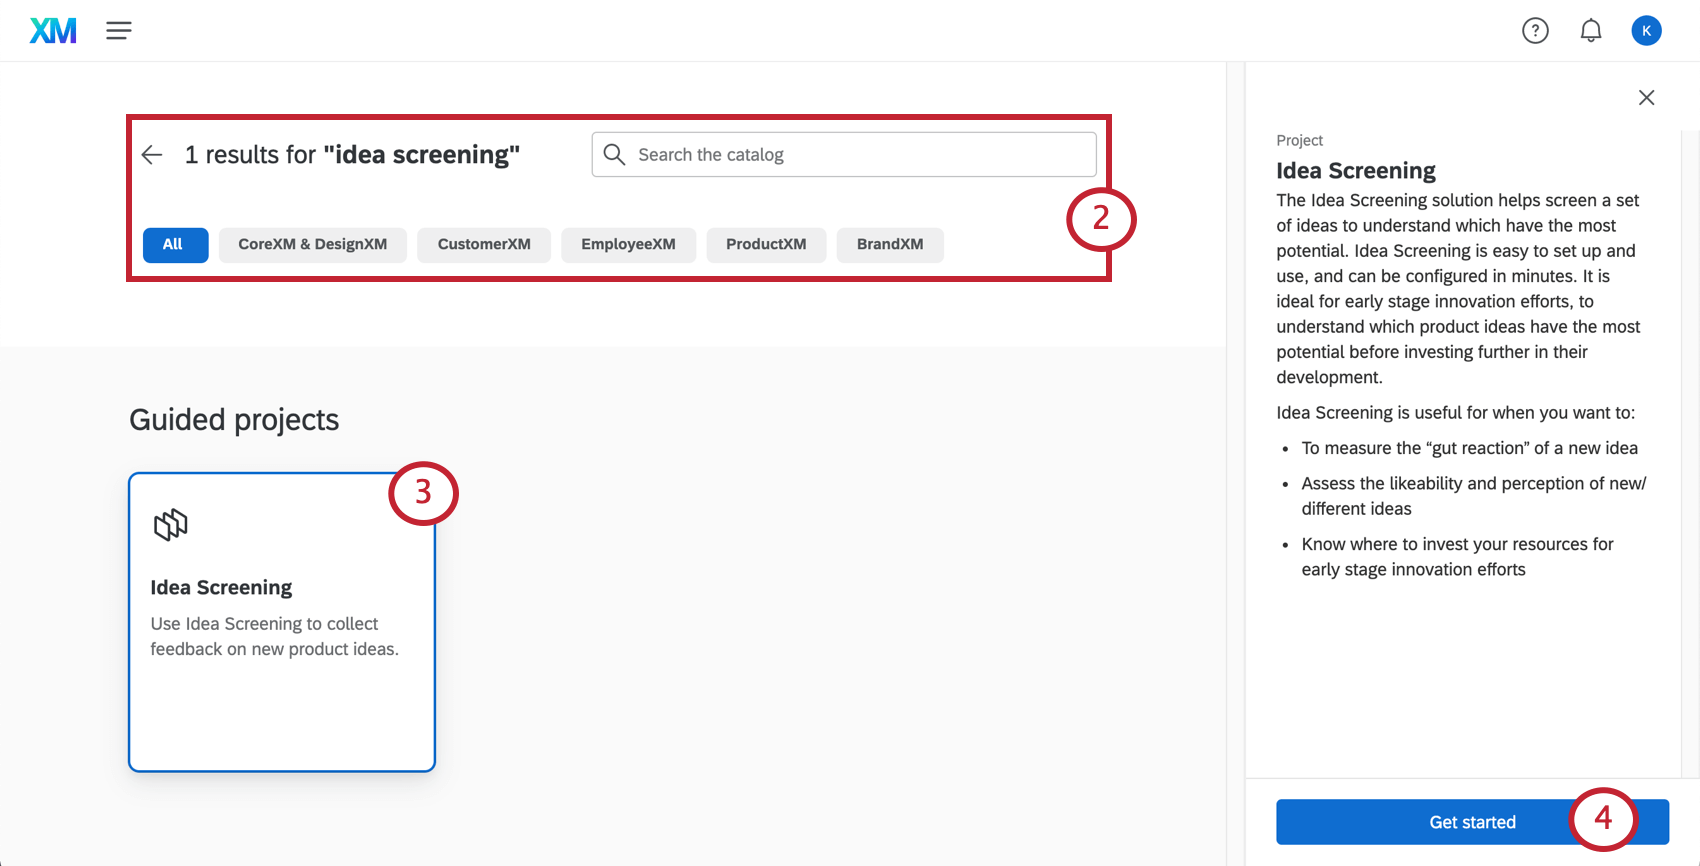 Filters and search bar along the top of the catalog, chosen project appears as a tile. Once the tile is clicked, a menu opens on the right with a description and a get started button